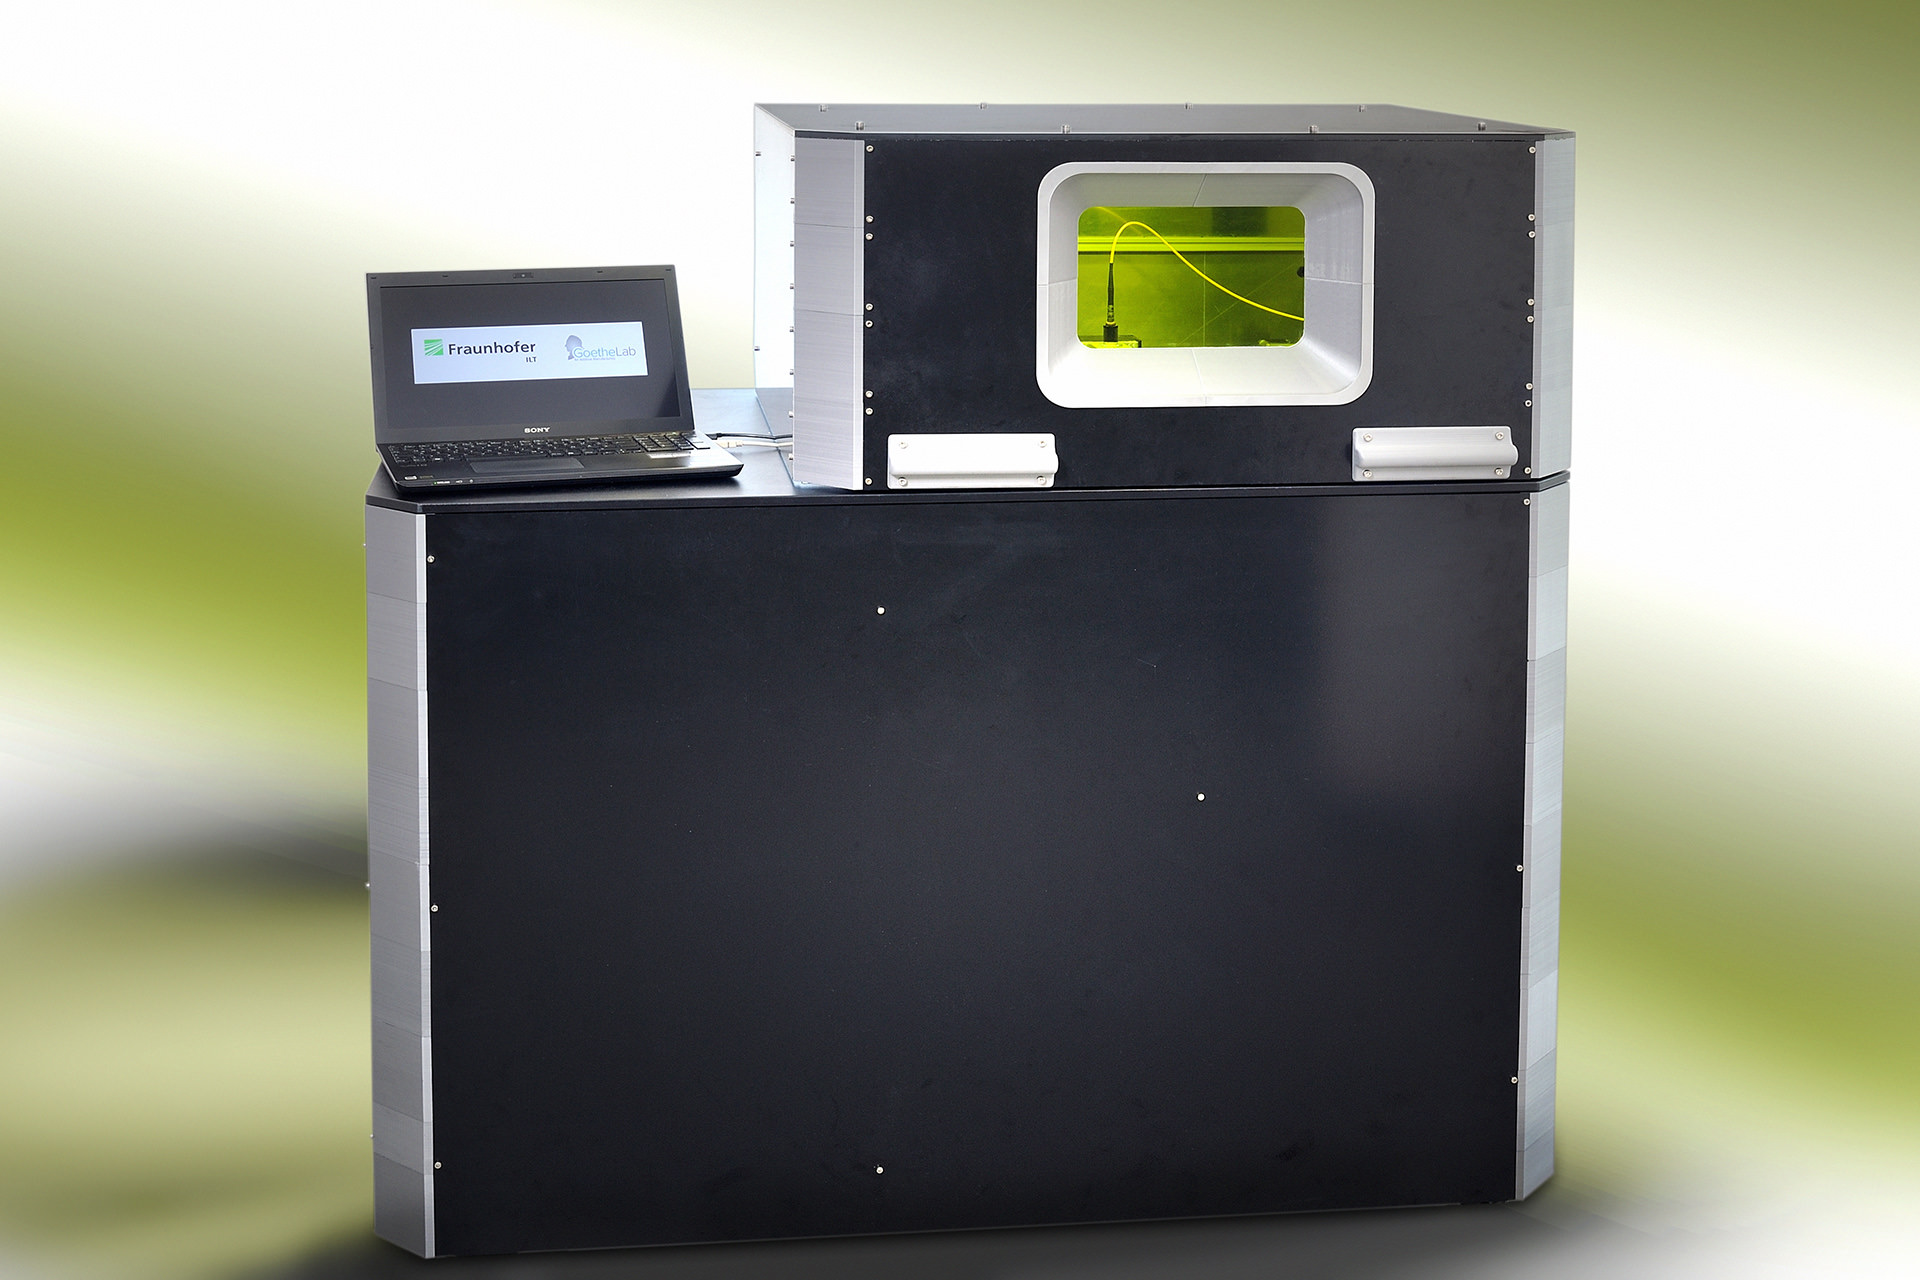 fraunhofer-ilt-slm-3d-printer-1